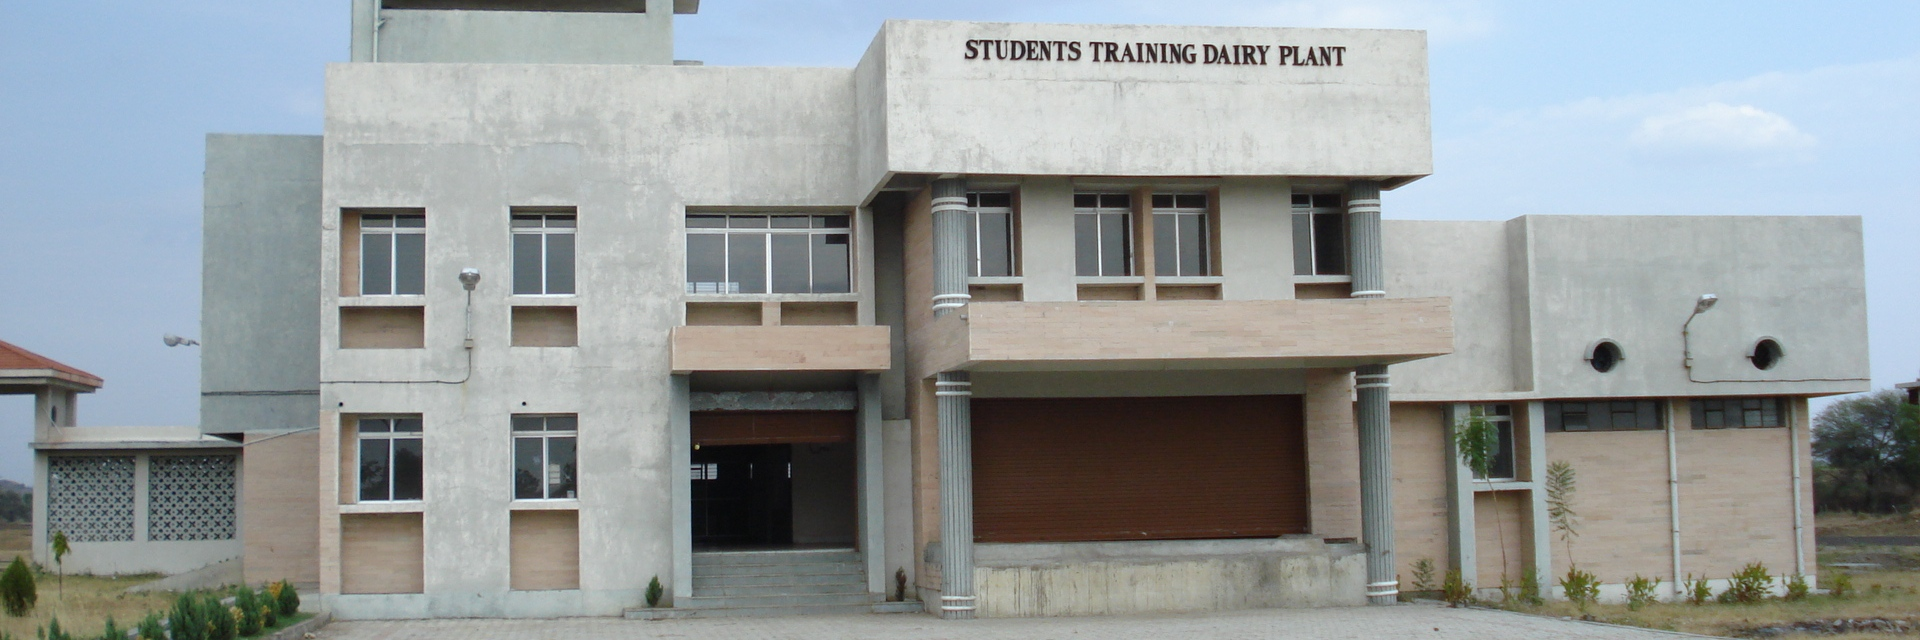 Students training Dairy Plant